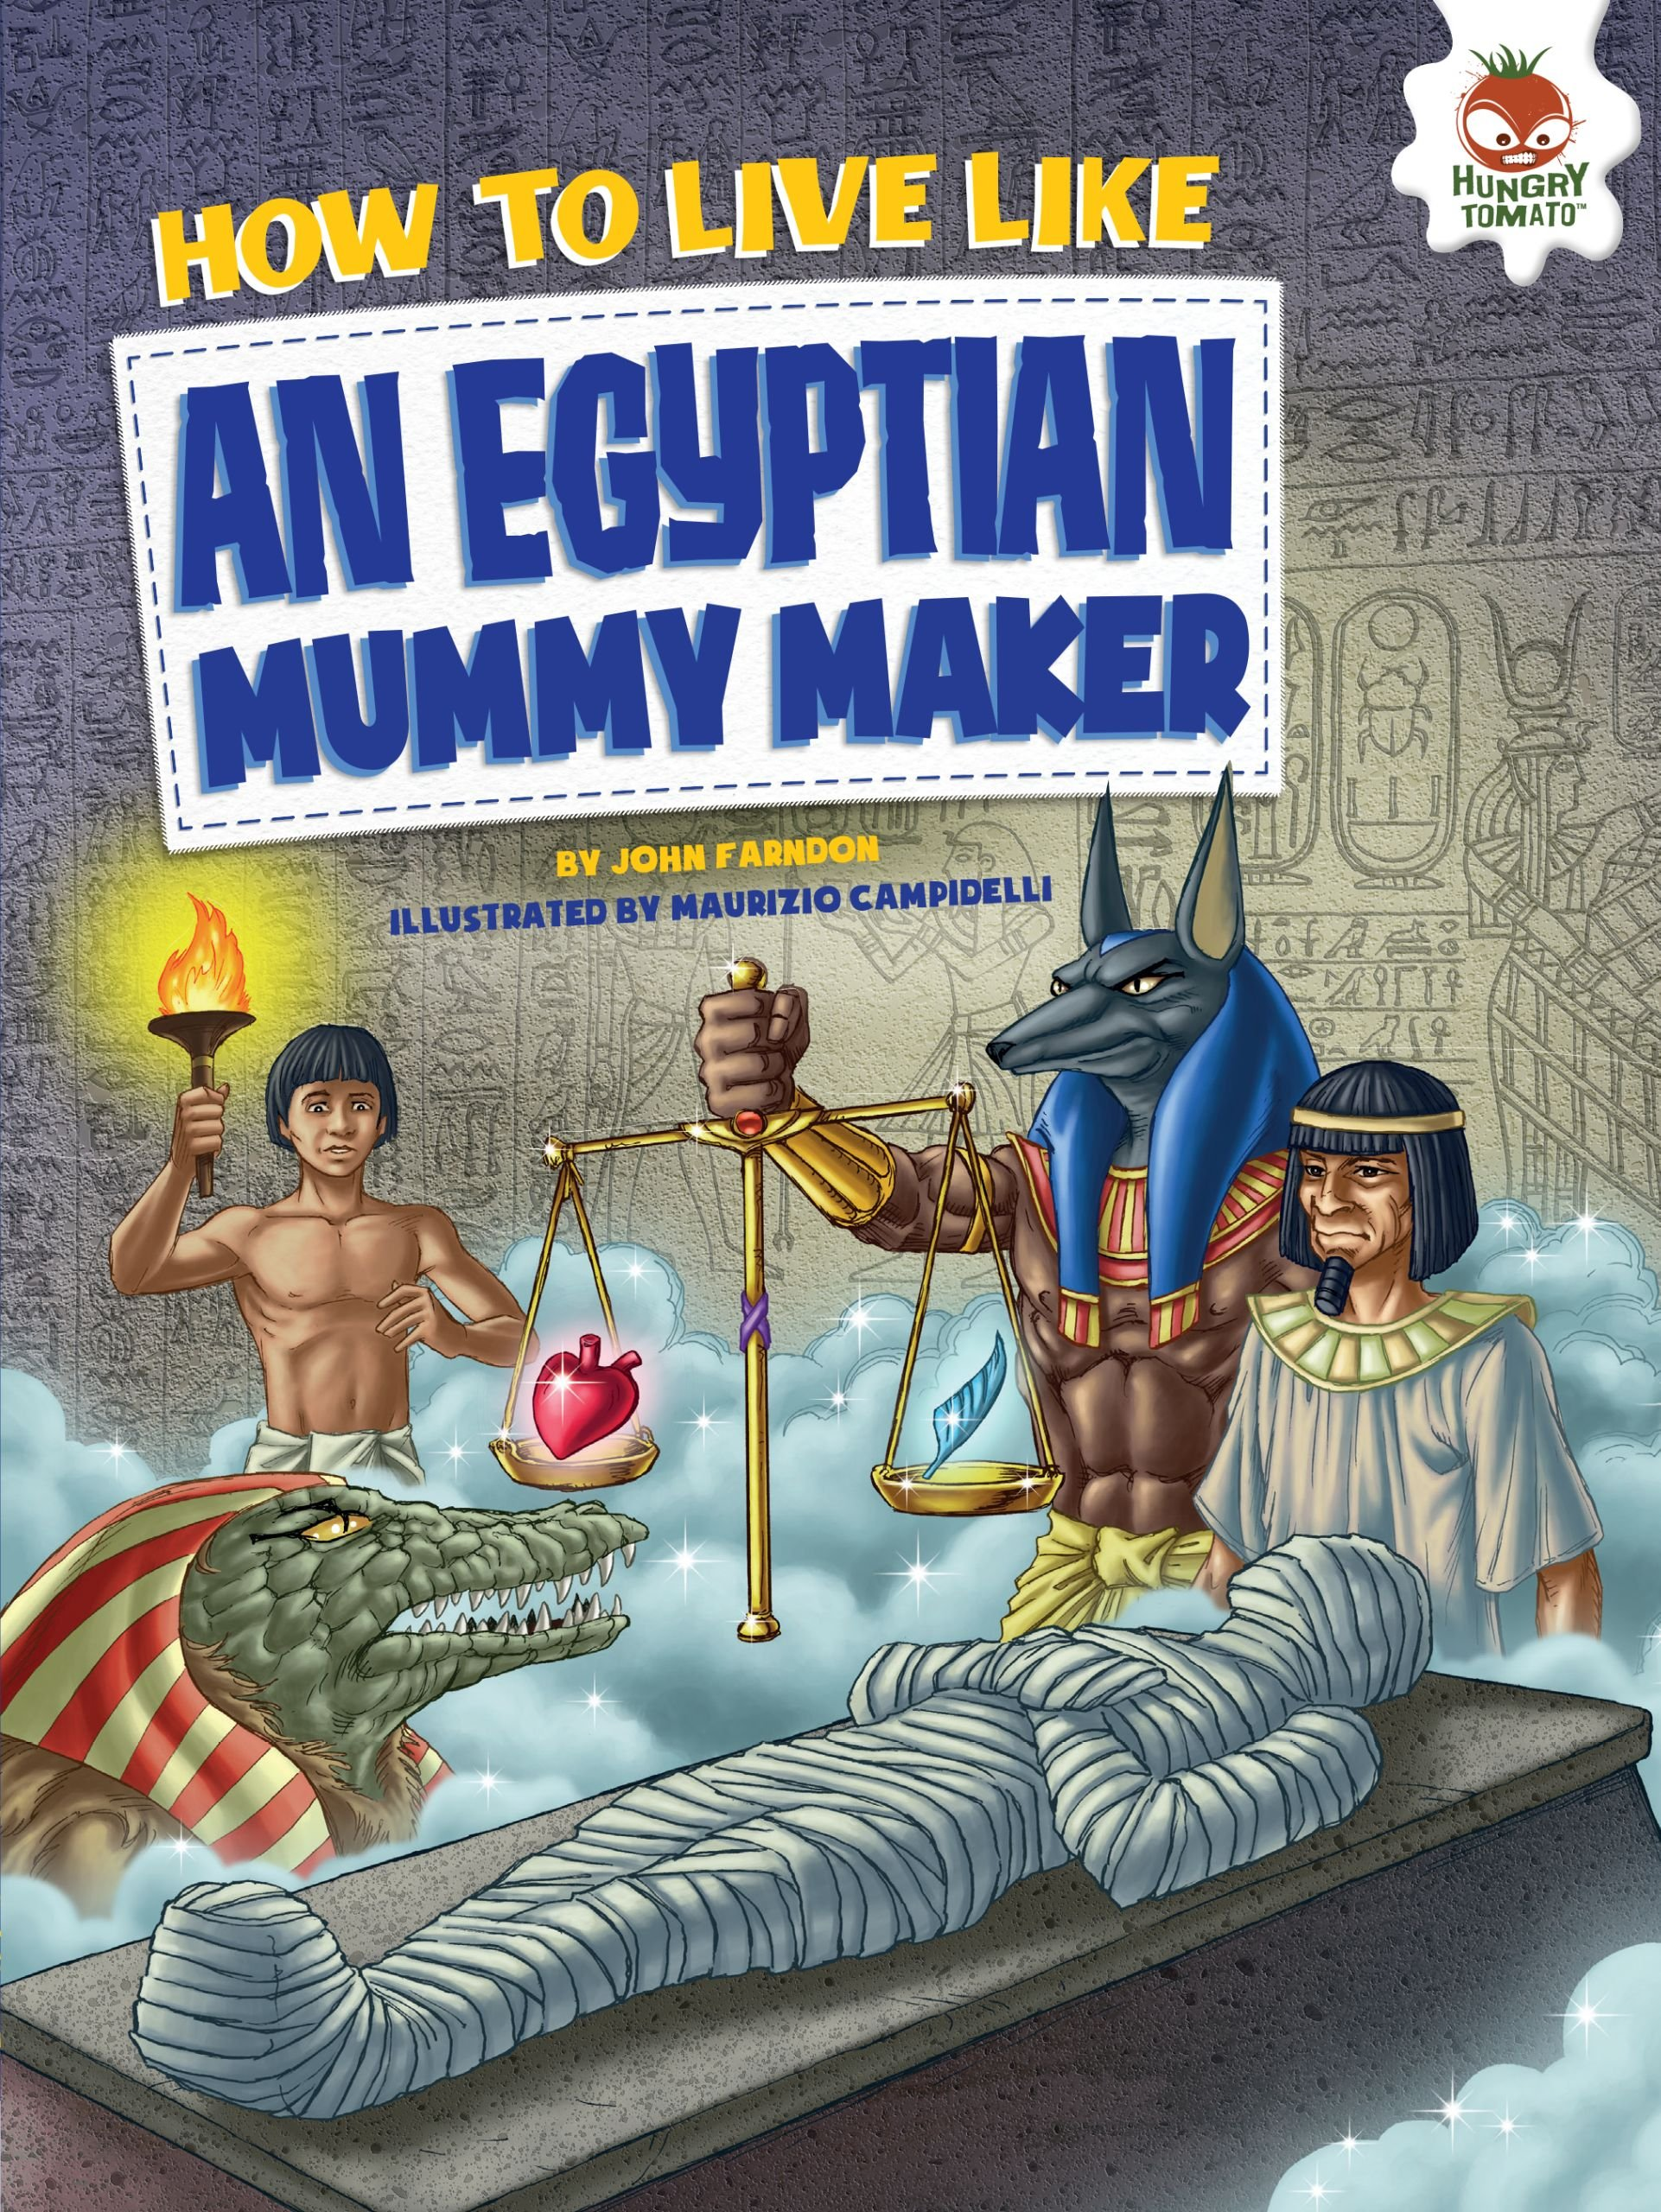 How to Live Like an Egyptian Mummy Maker: Amazon.co.uk: John ...